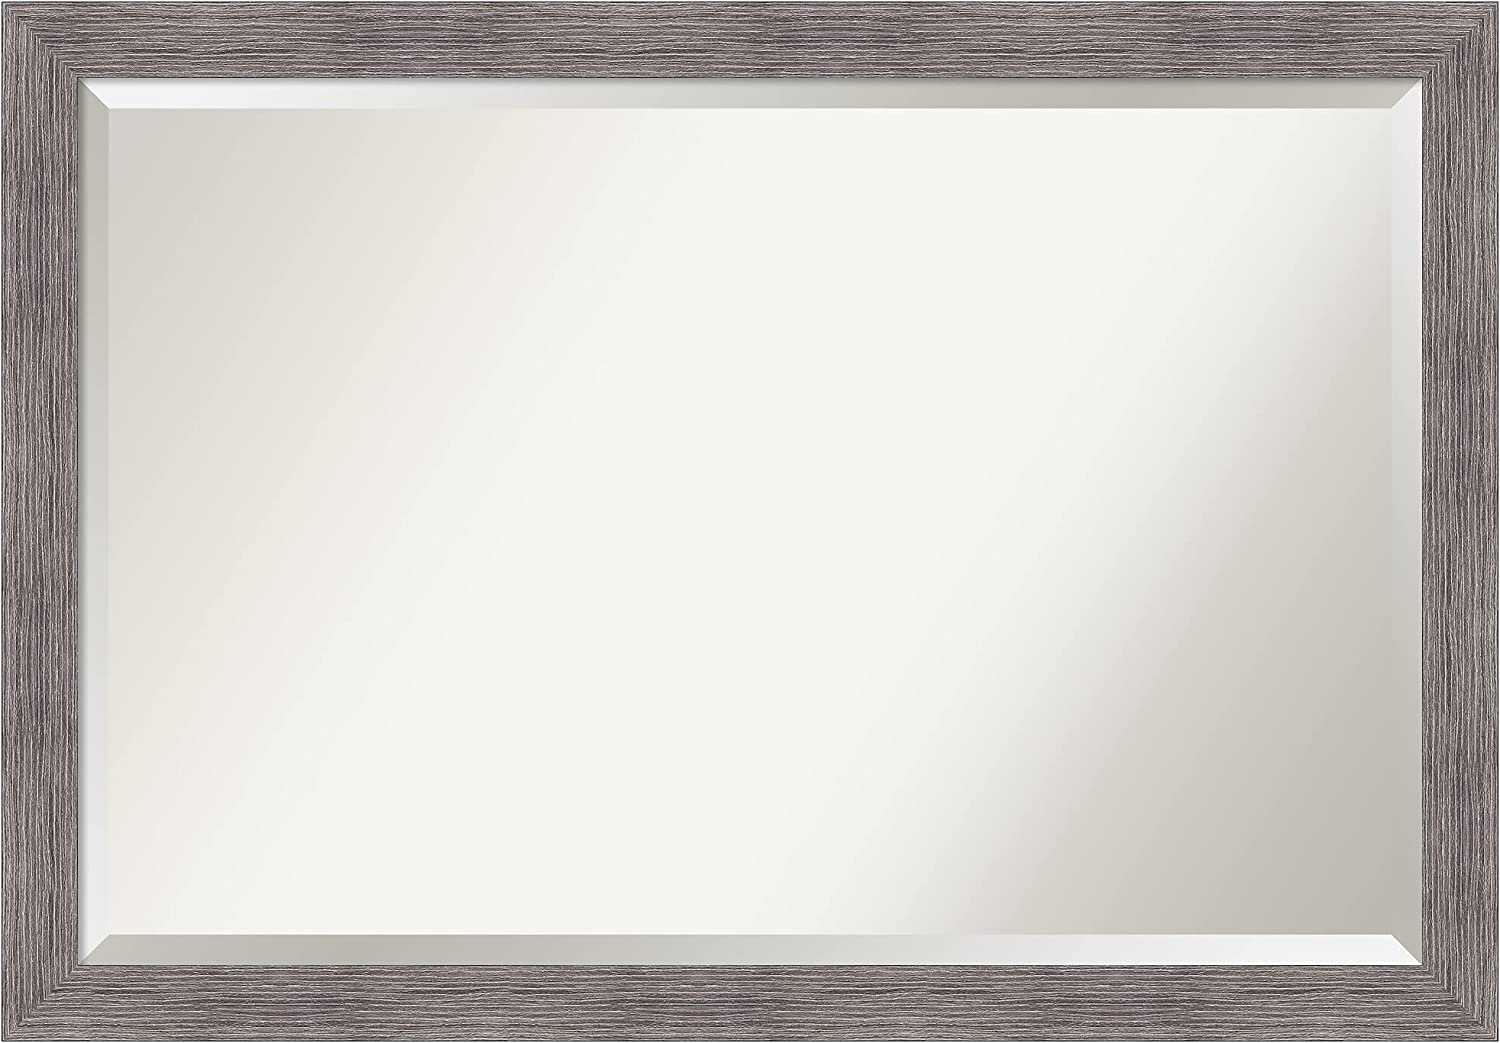 67% OFF of Ranking TOP7 fixed price Amanti Art Framed Vanity Mirror Mirrors for Bathroom Wall Pi